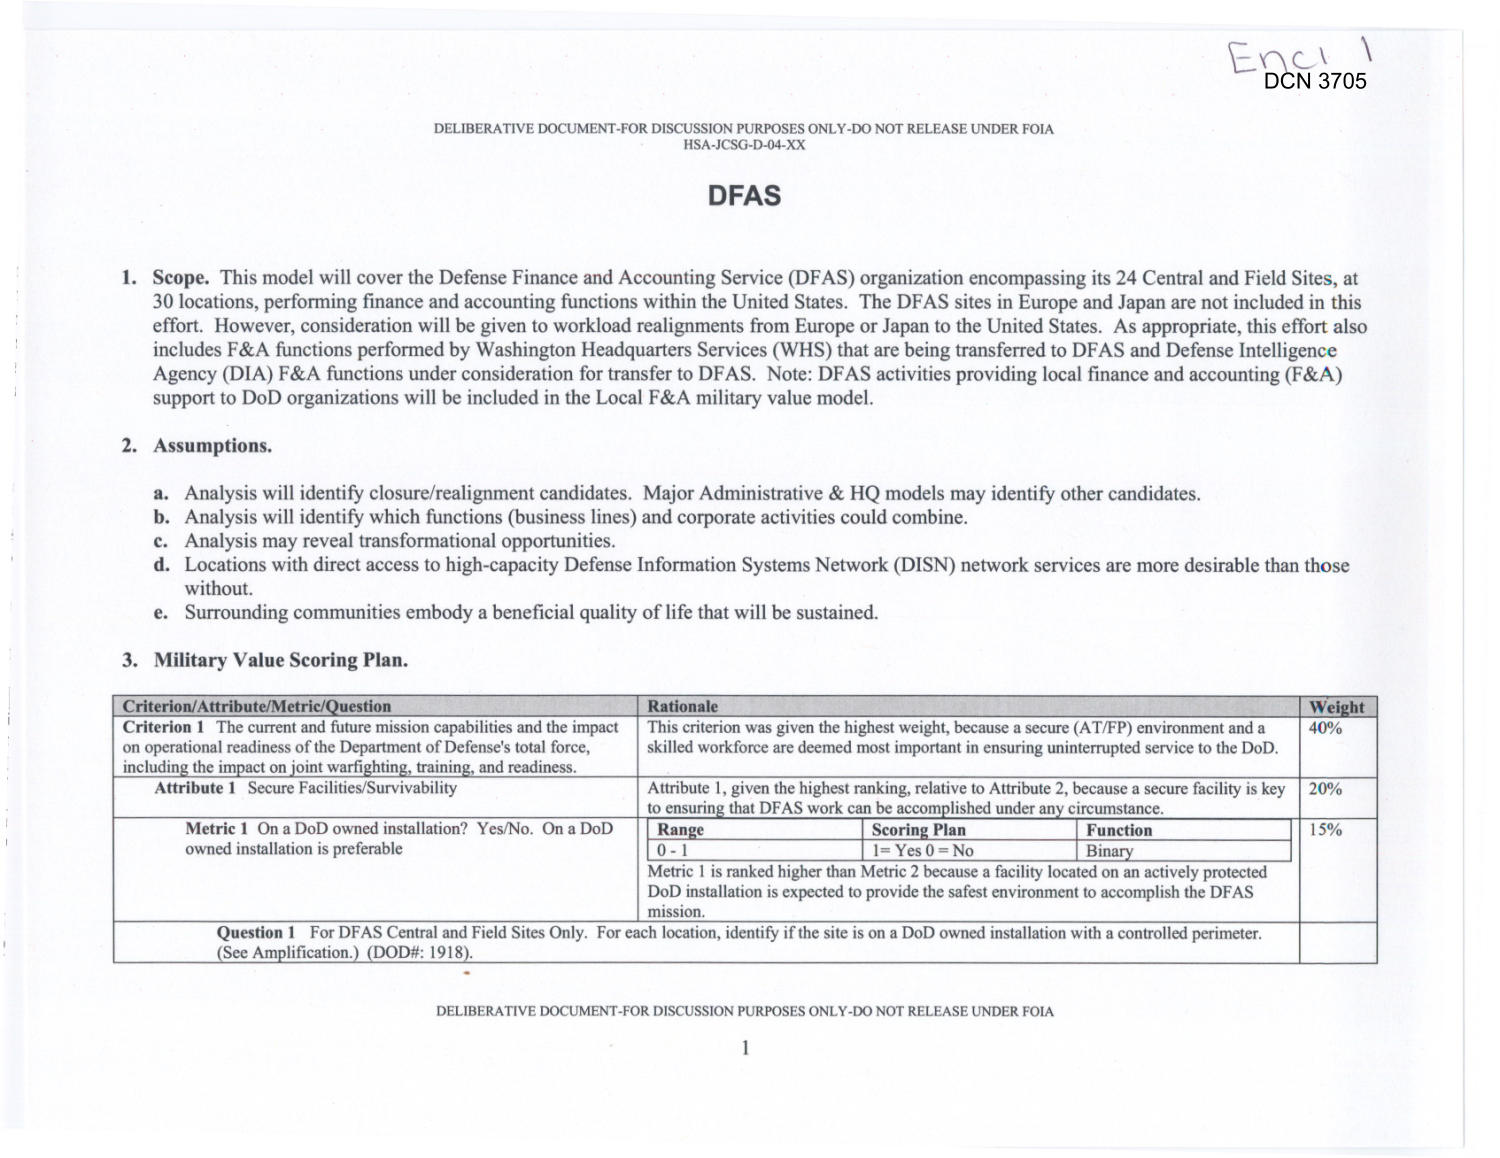 OSD BRAC Clearinghouse Tasker- DFAS/Rome MilitaryValue                                                                                                      [Sequence #]: 2 of 11